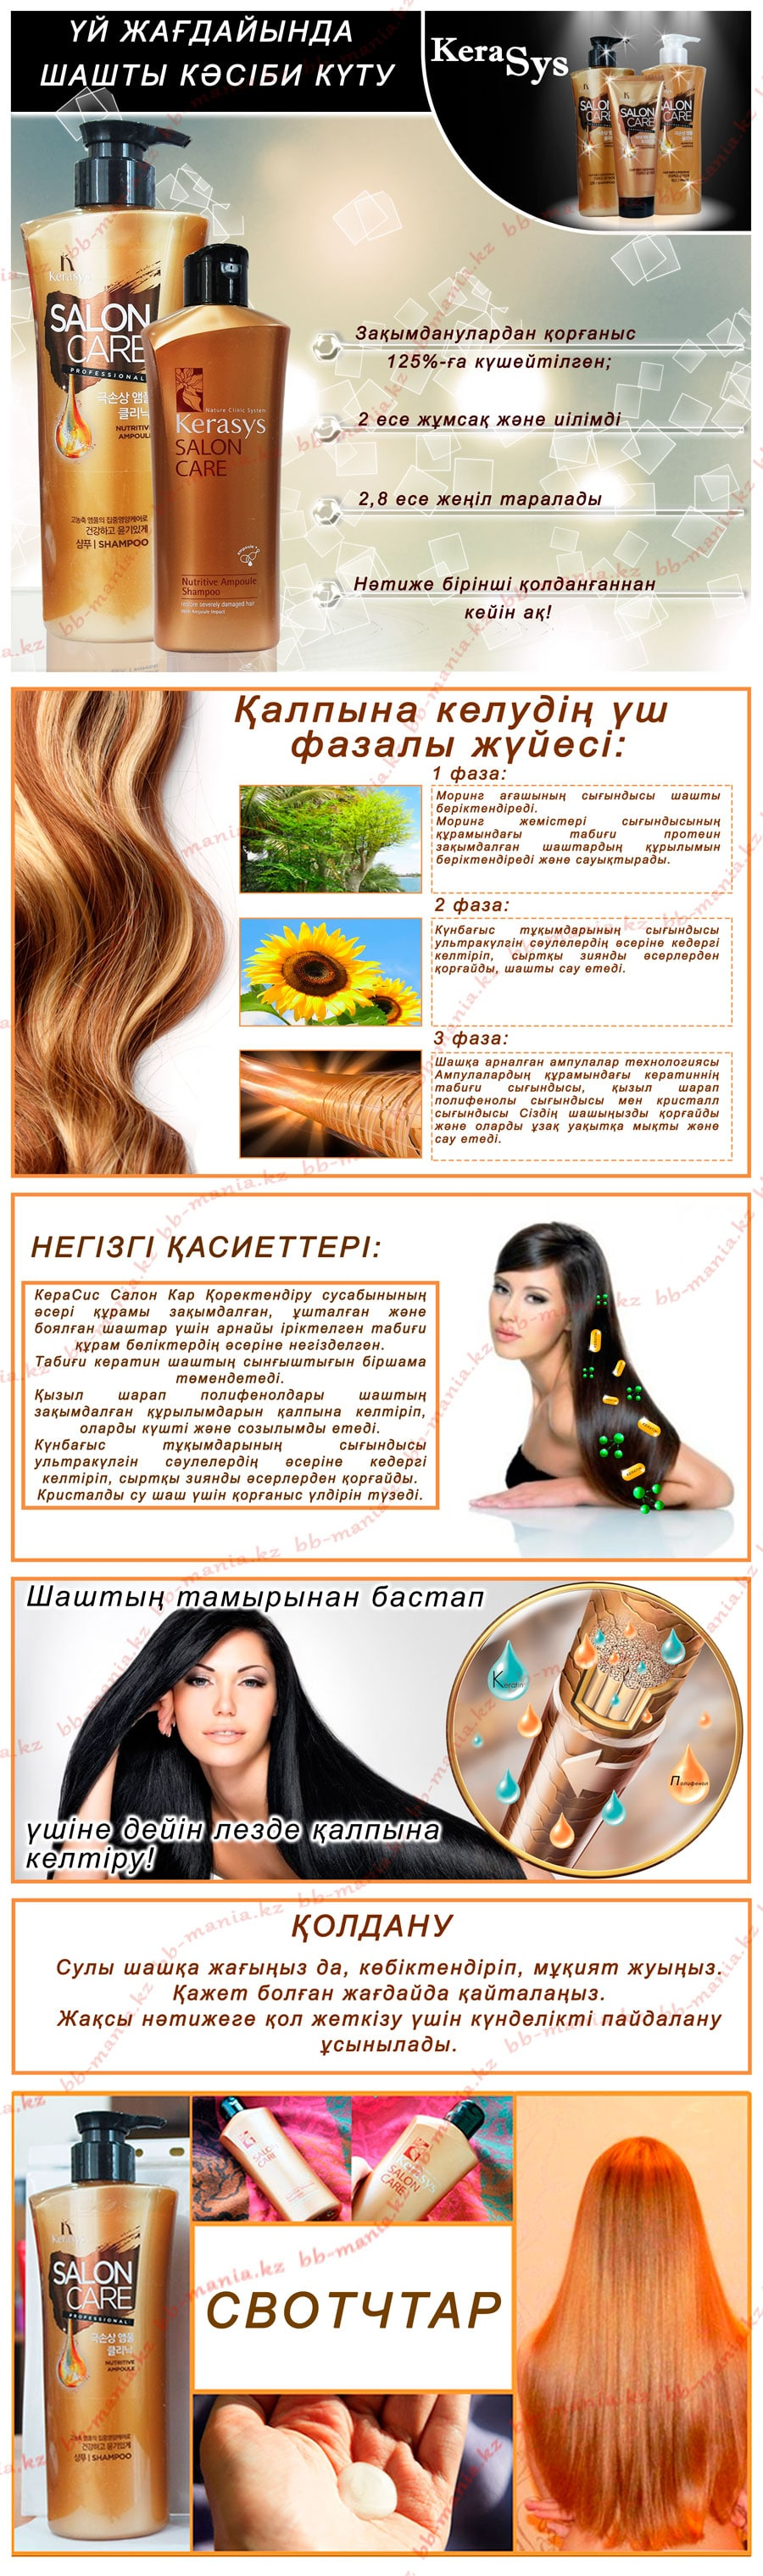 Kerasys-Salon-Care-Nutritive-Ampoule-Shampoo-кз-min